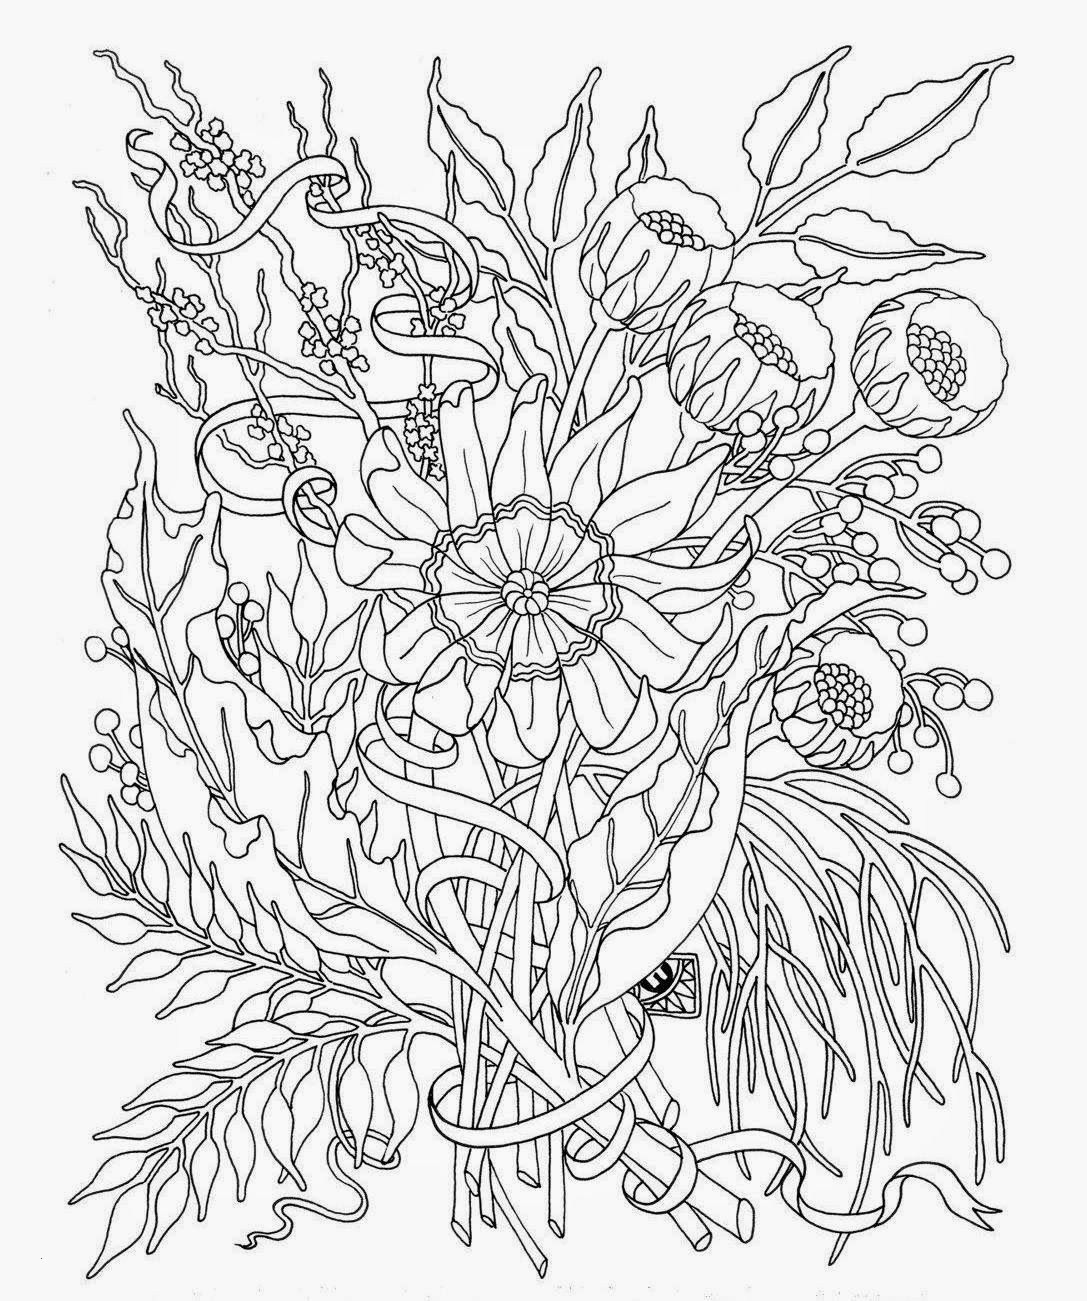 Flower Vase Store Of 13 New Vase Of Flowers Bogekompresorturkiye Com Regarding Coloring Pagesflowers Luxury Cool Vases Flower Vase Coloring Page Pages Flowers In A top I 0d